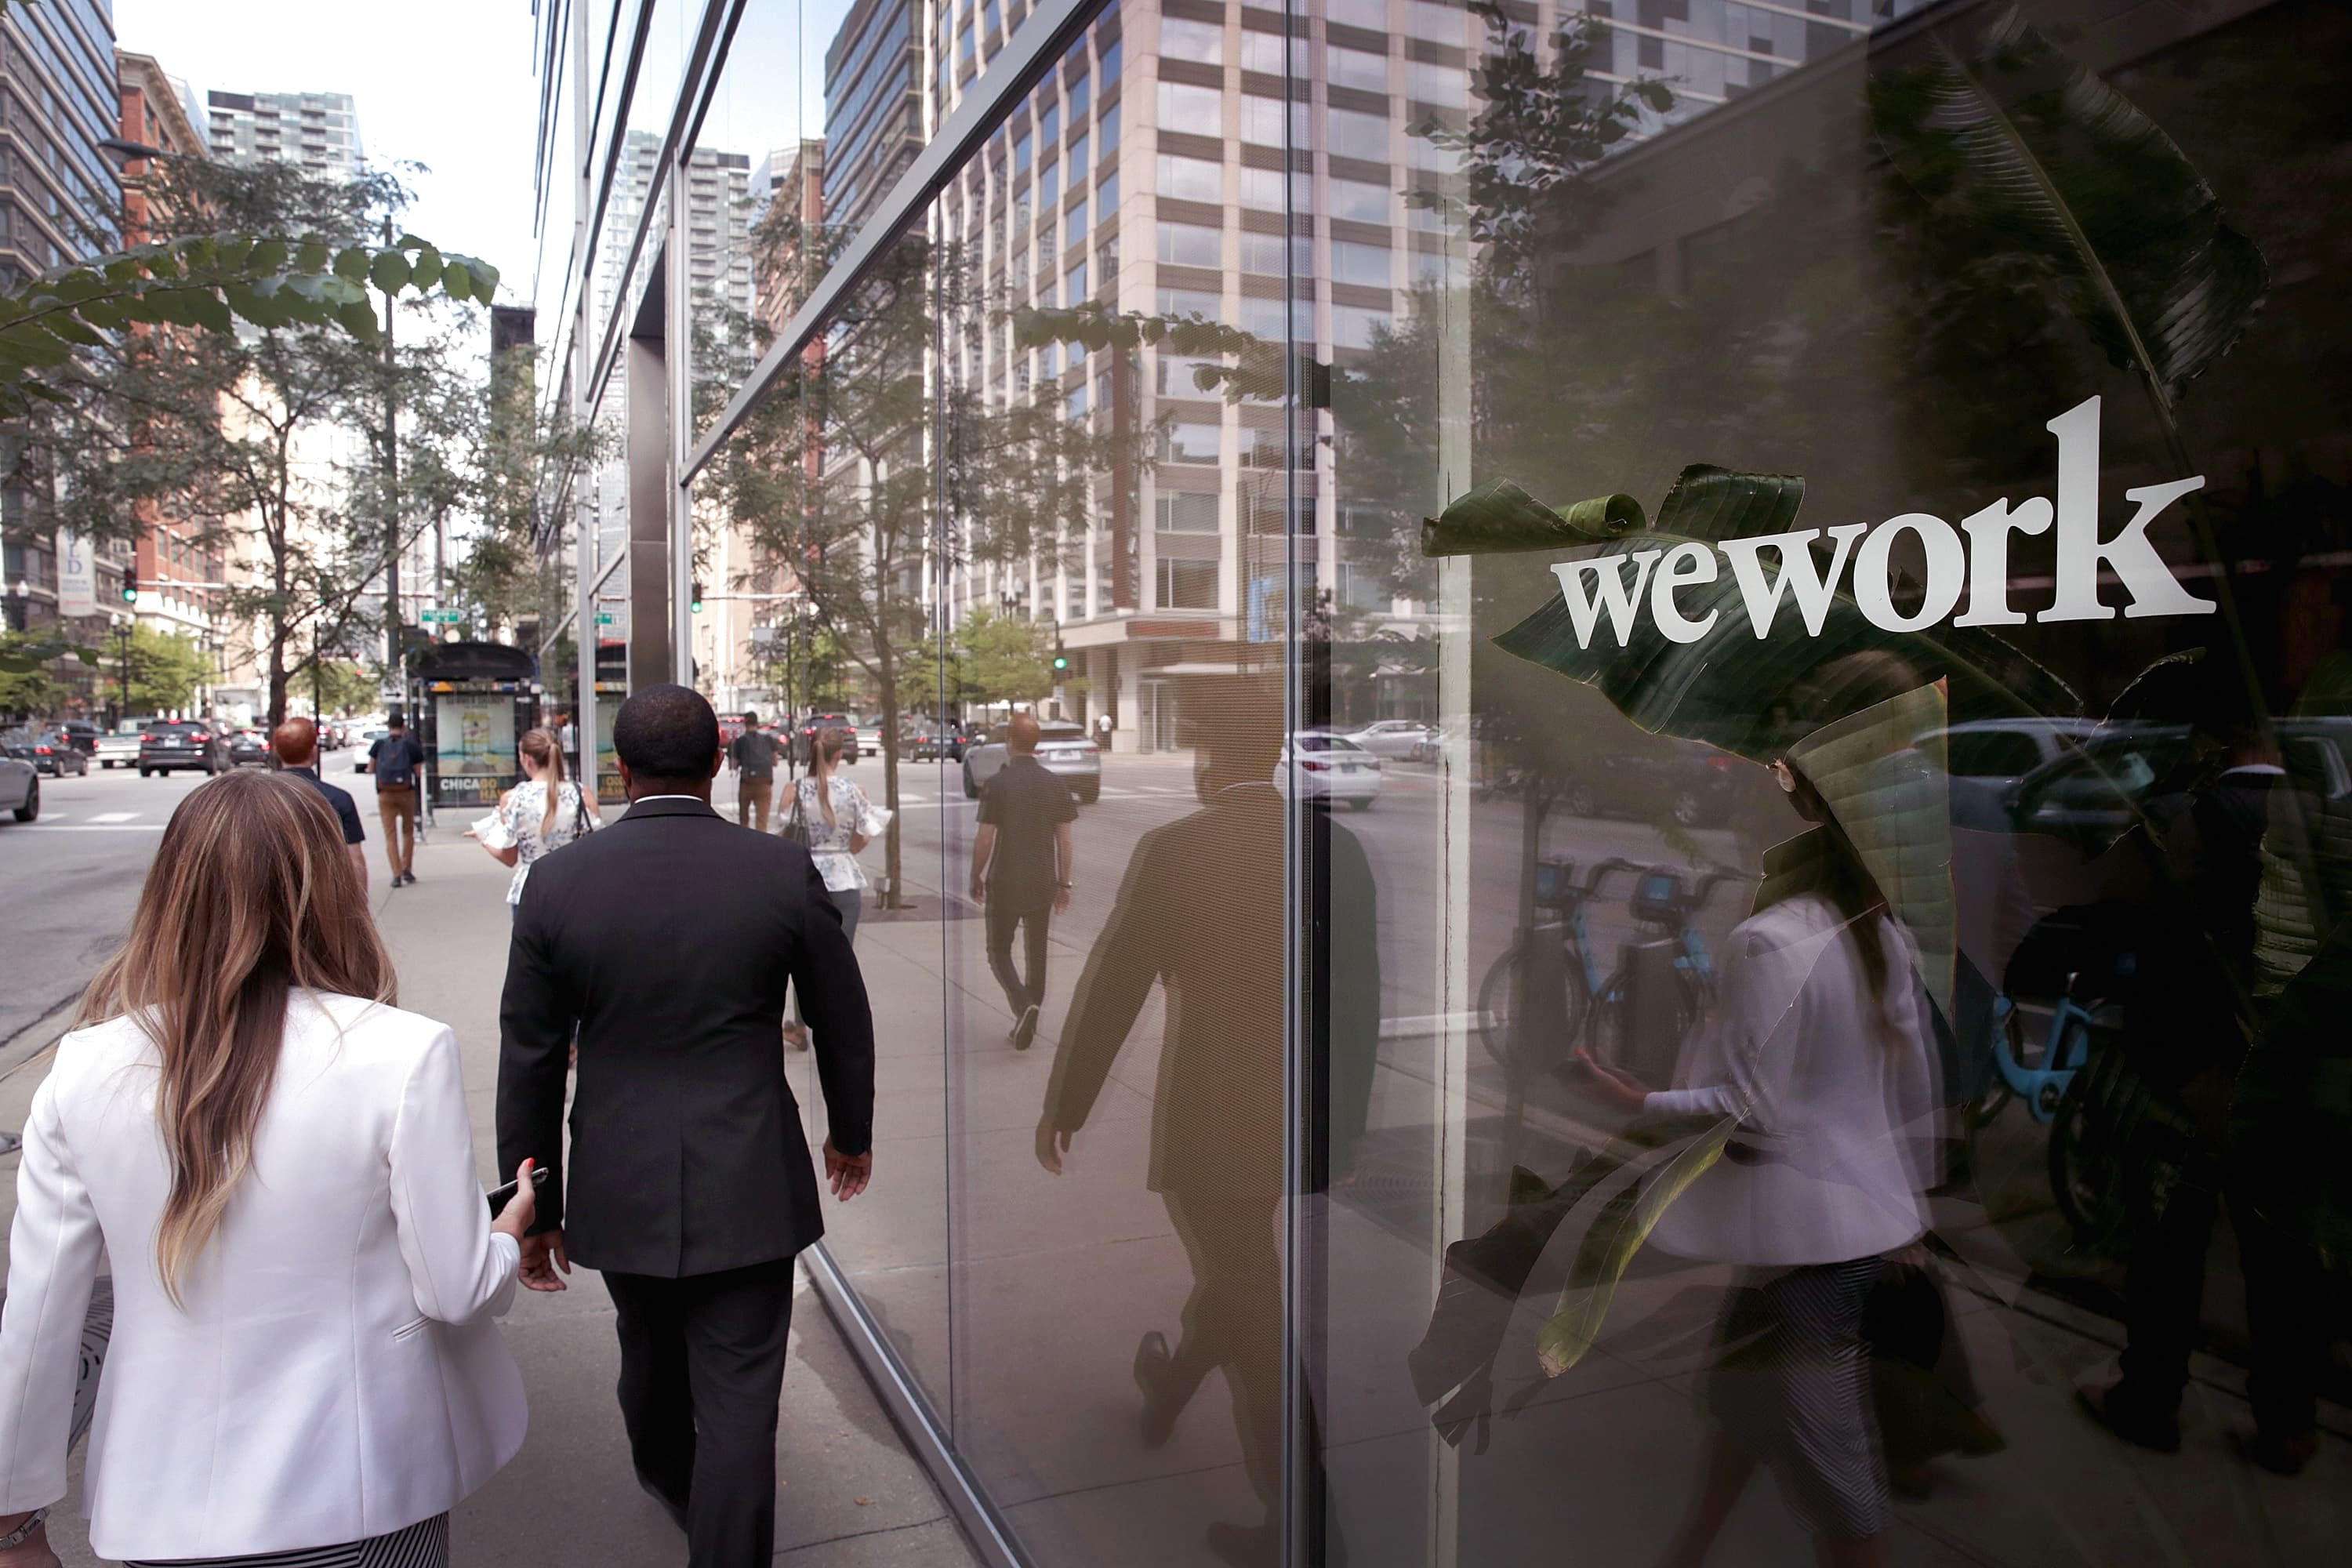 Without deal, WeWork would have been out of money next week, sources say - CNBC